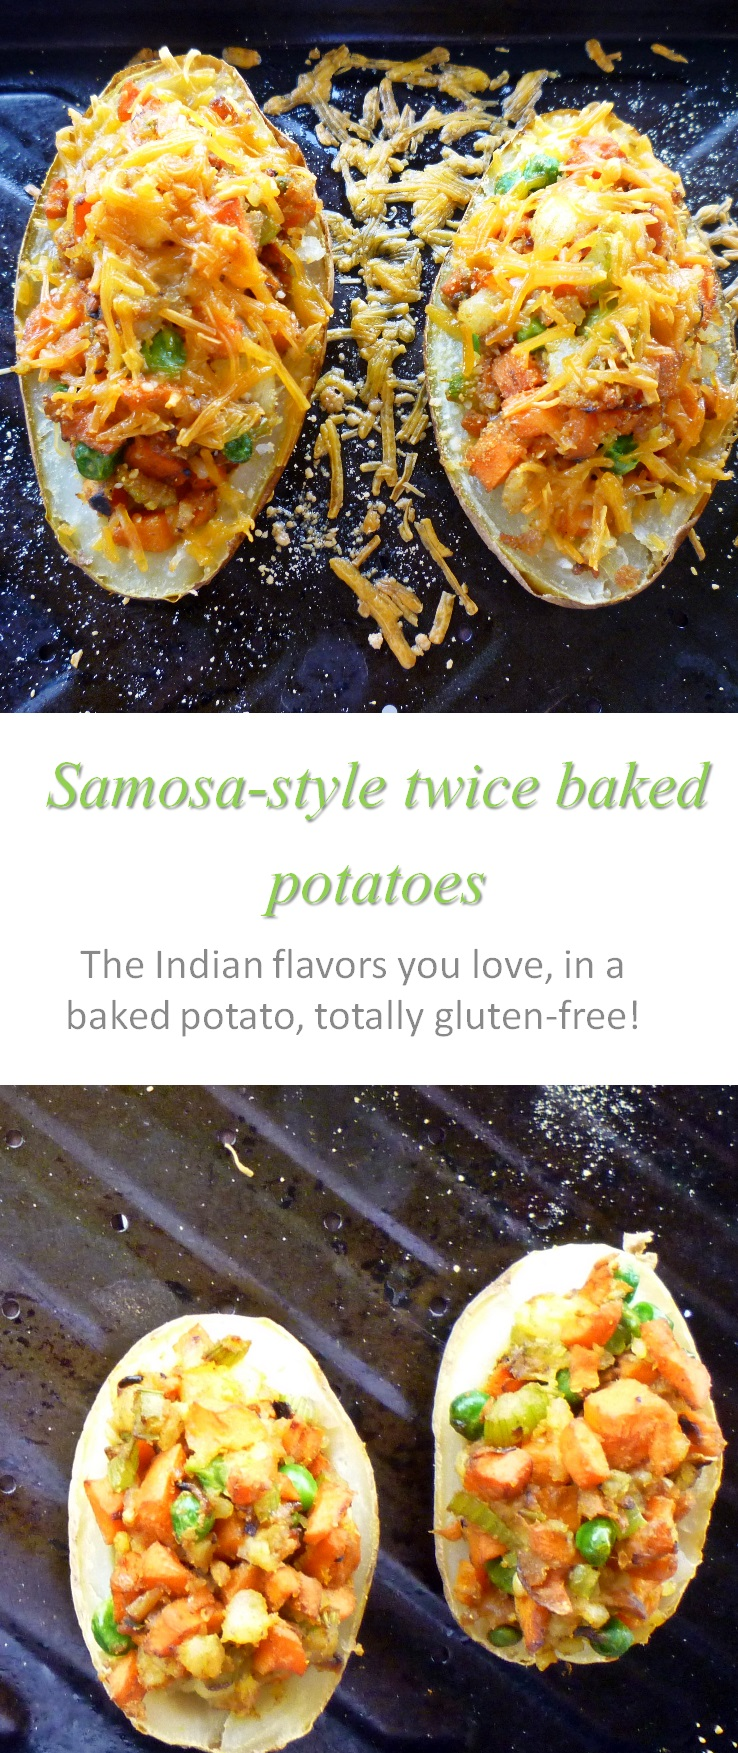 Twice-baked potatoes, with a samosa-style filling - who needs Indian takeout when you can make these samosa baked potatoes at home? #bakedpotatoes